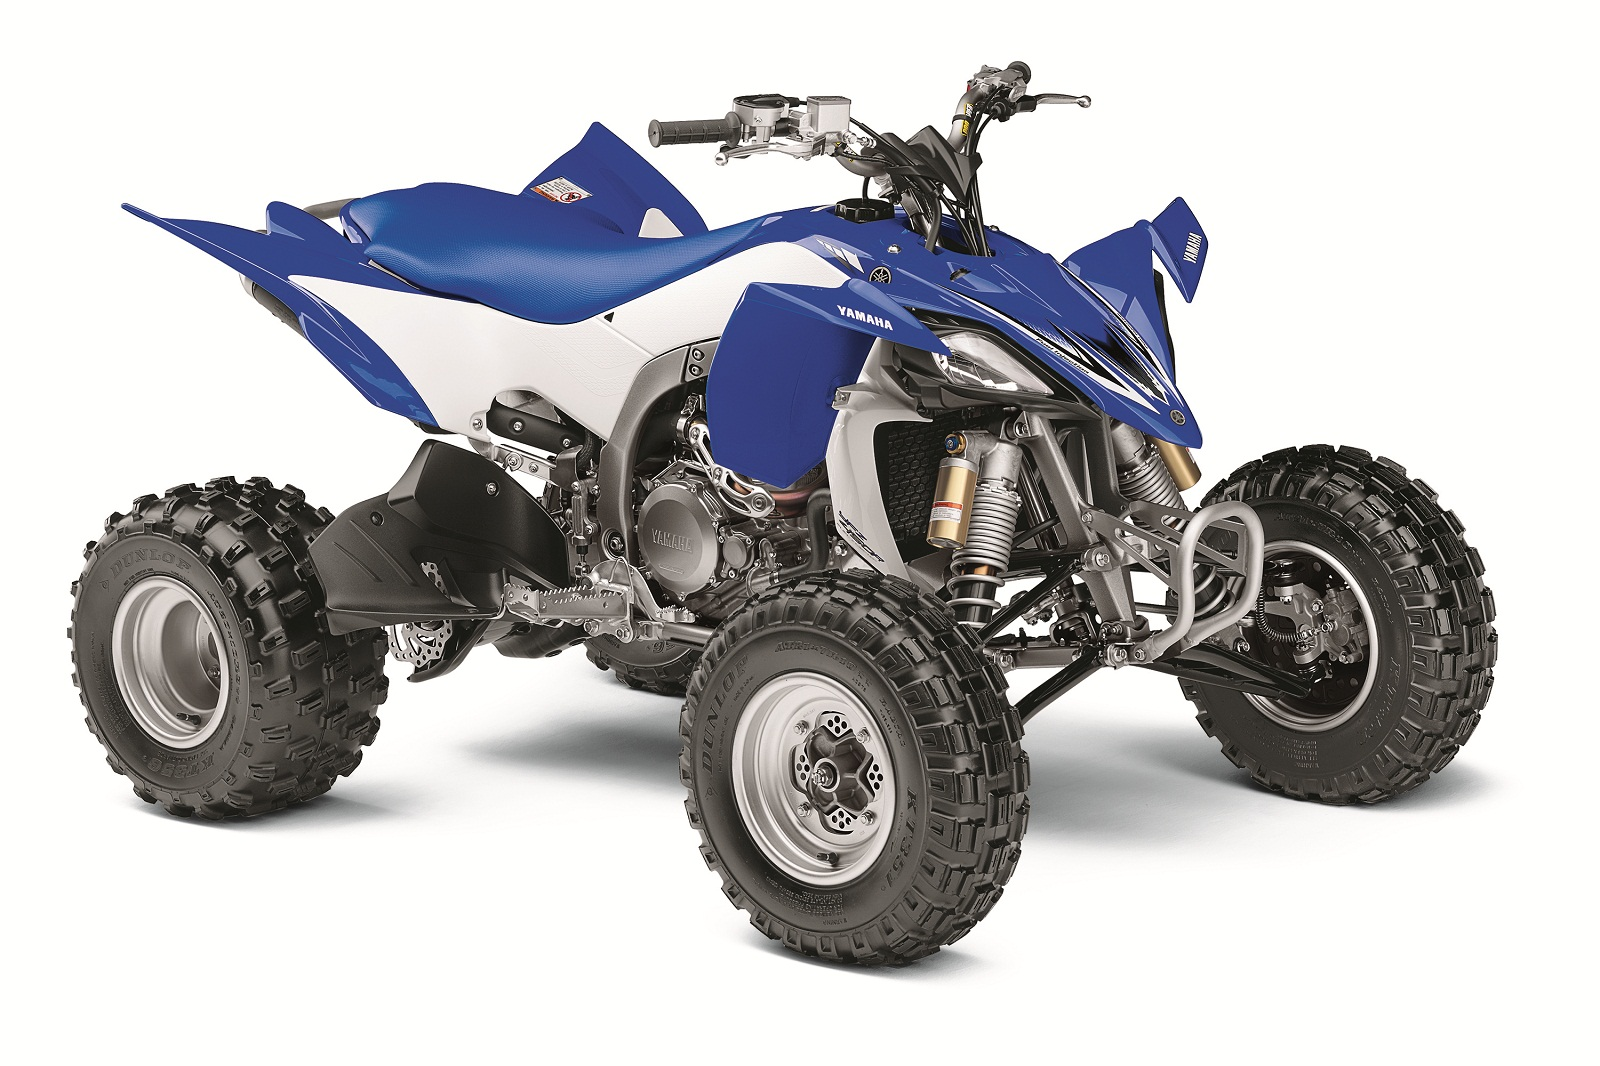 2012 yamaha yfz 450r top speed